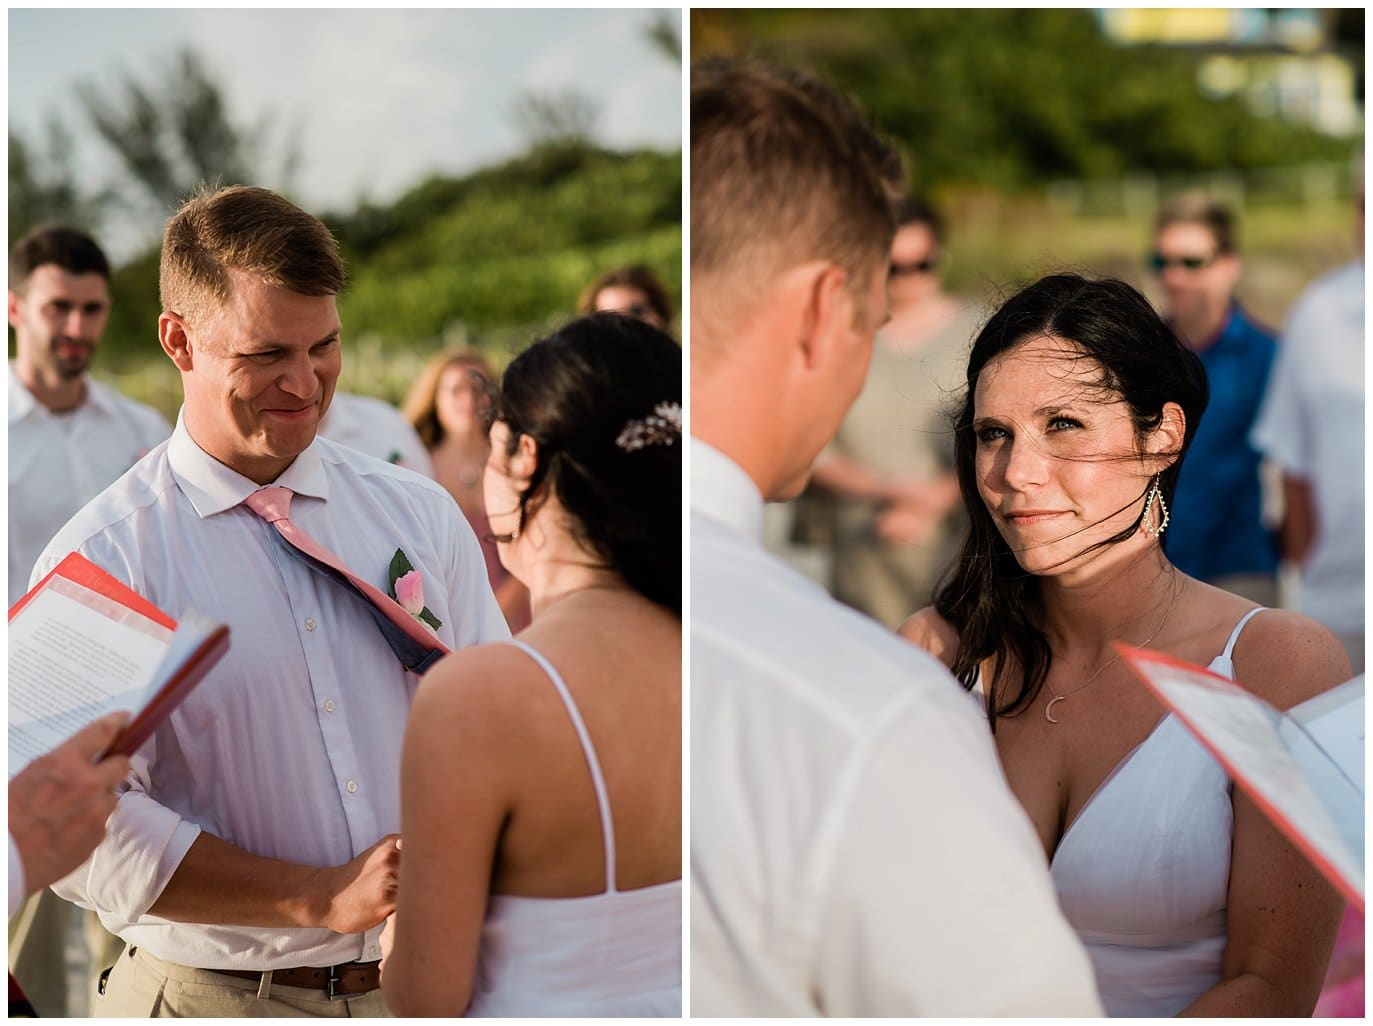 Captiva Island Beach wedding vows photo